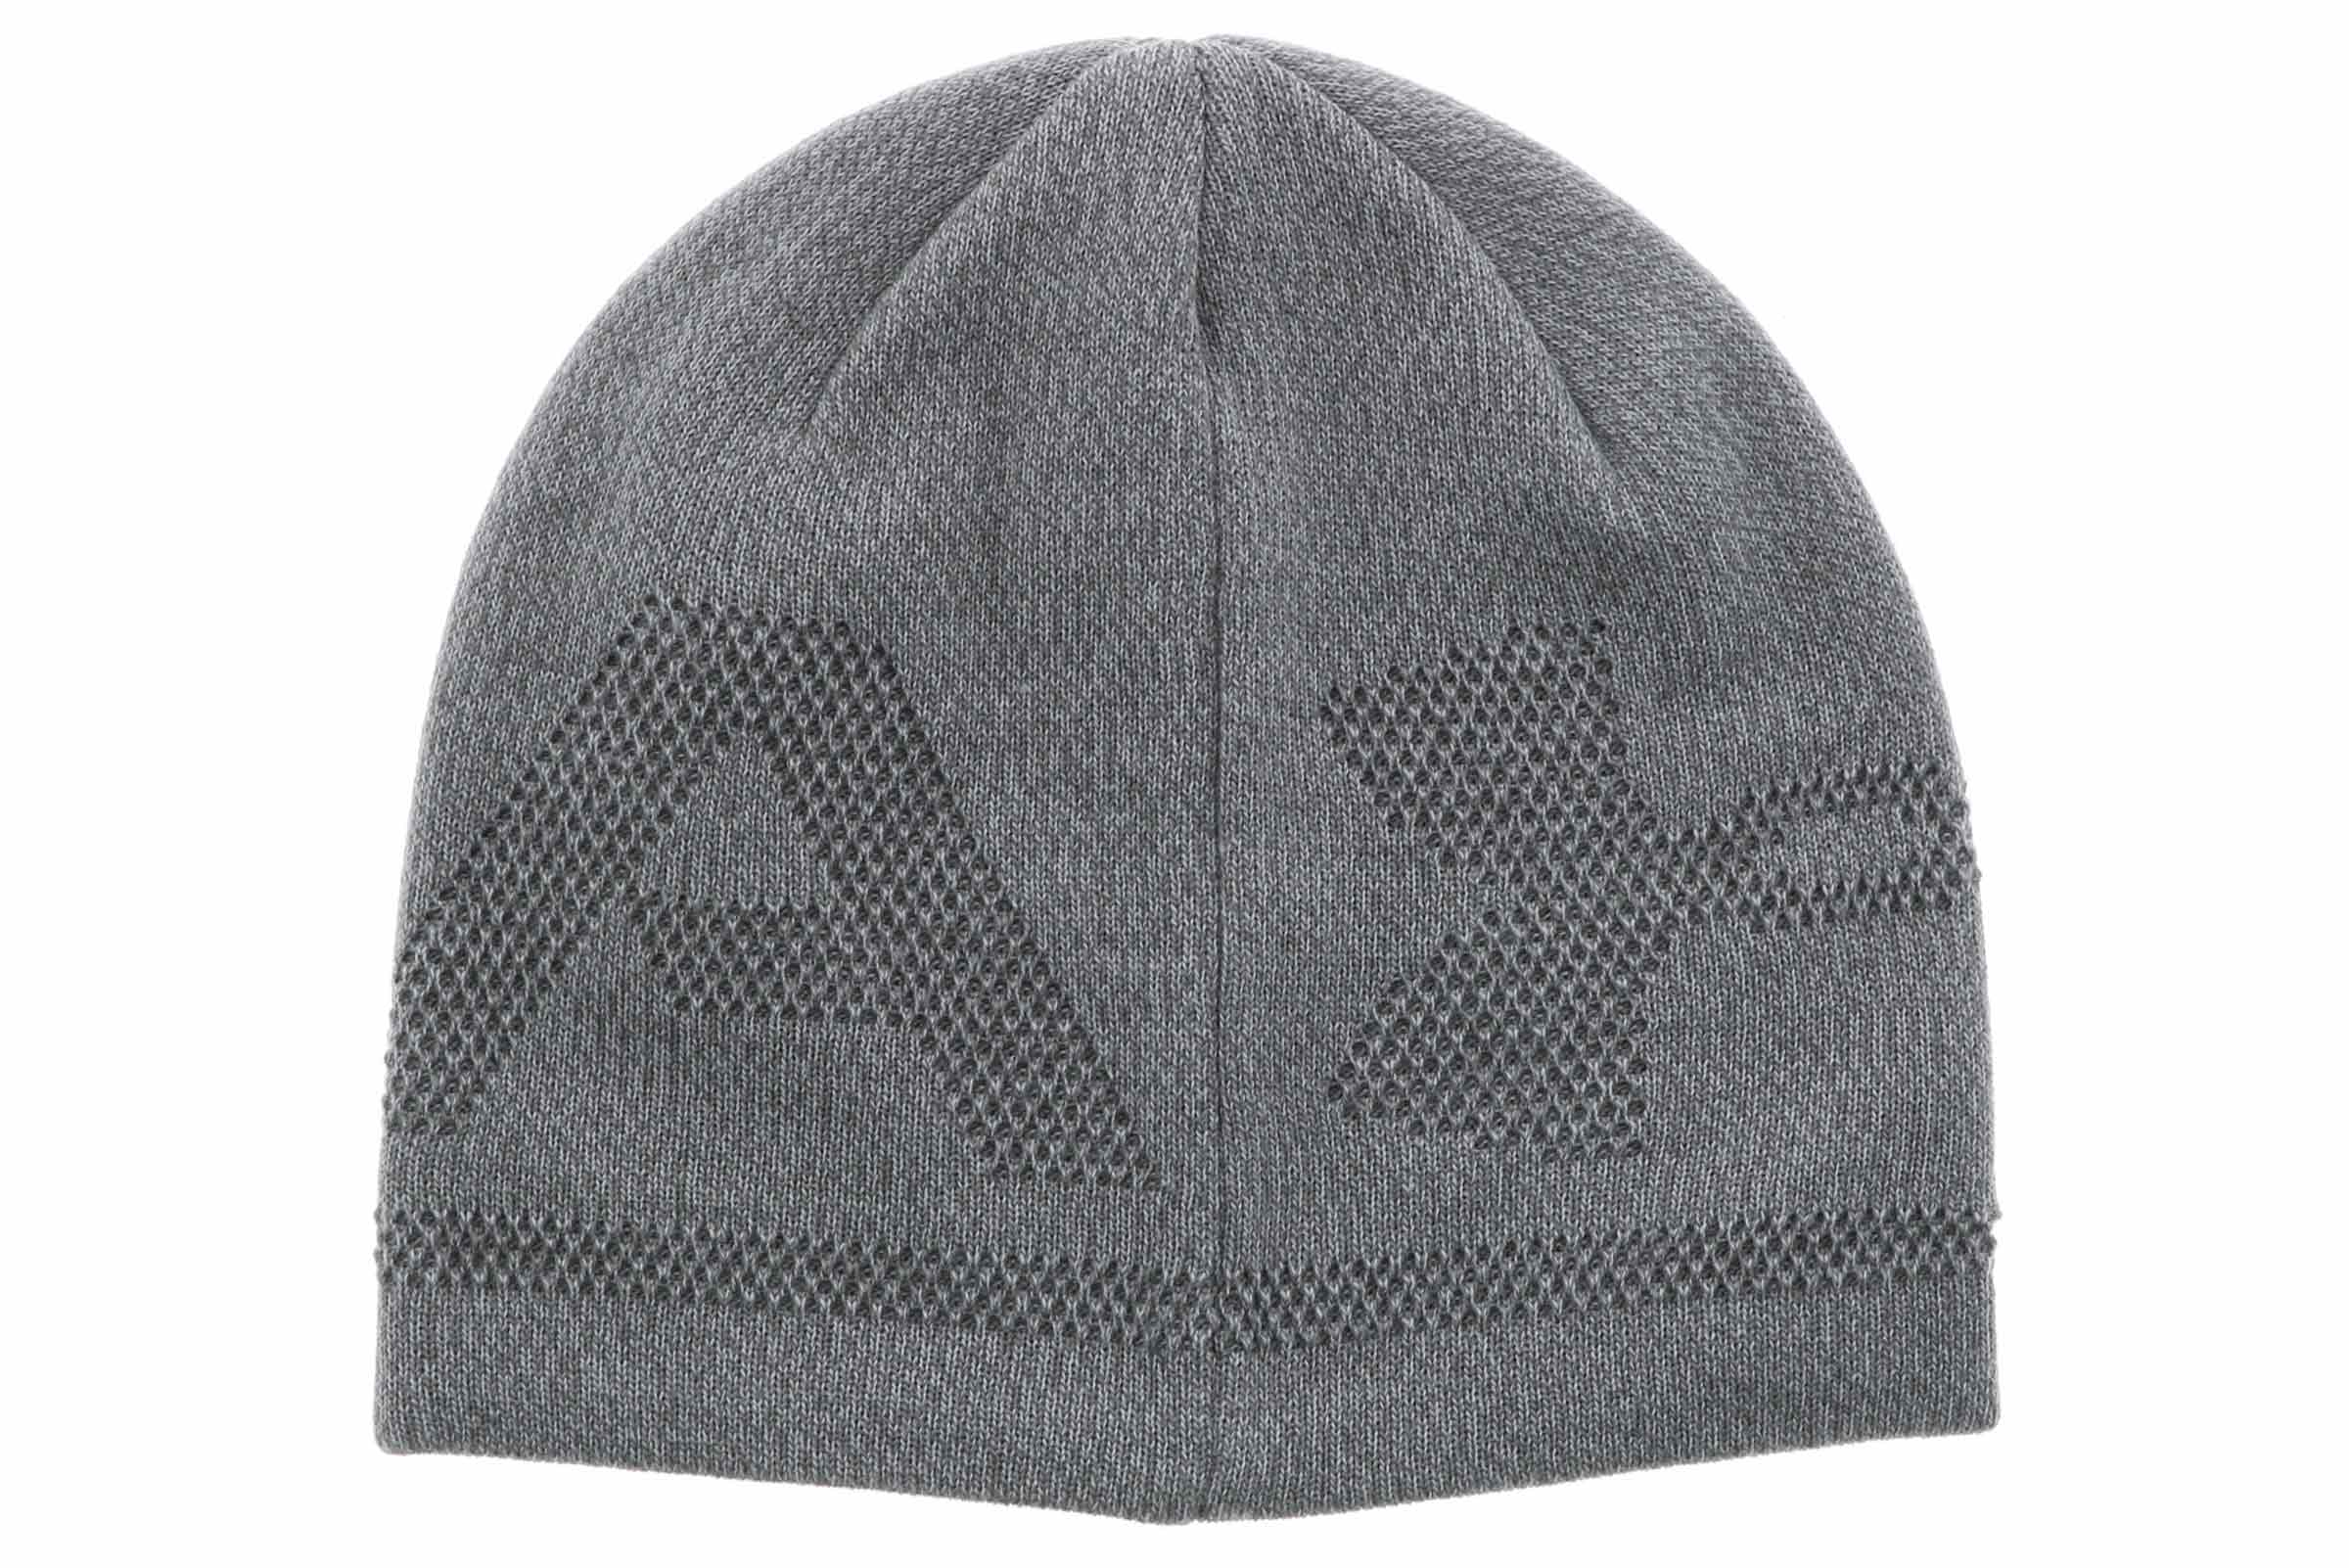 e9f0b09579 Men's Under Armour Billboard Beanie 3.0